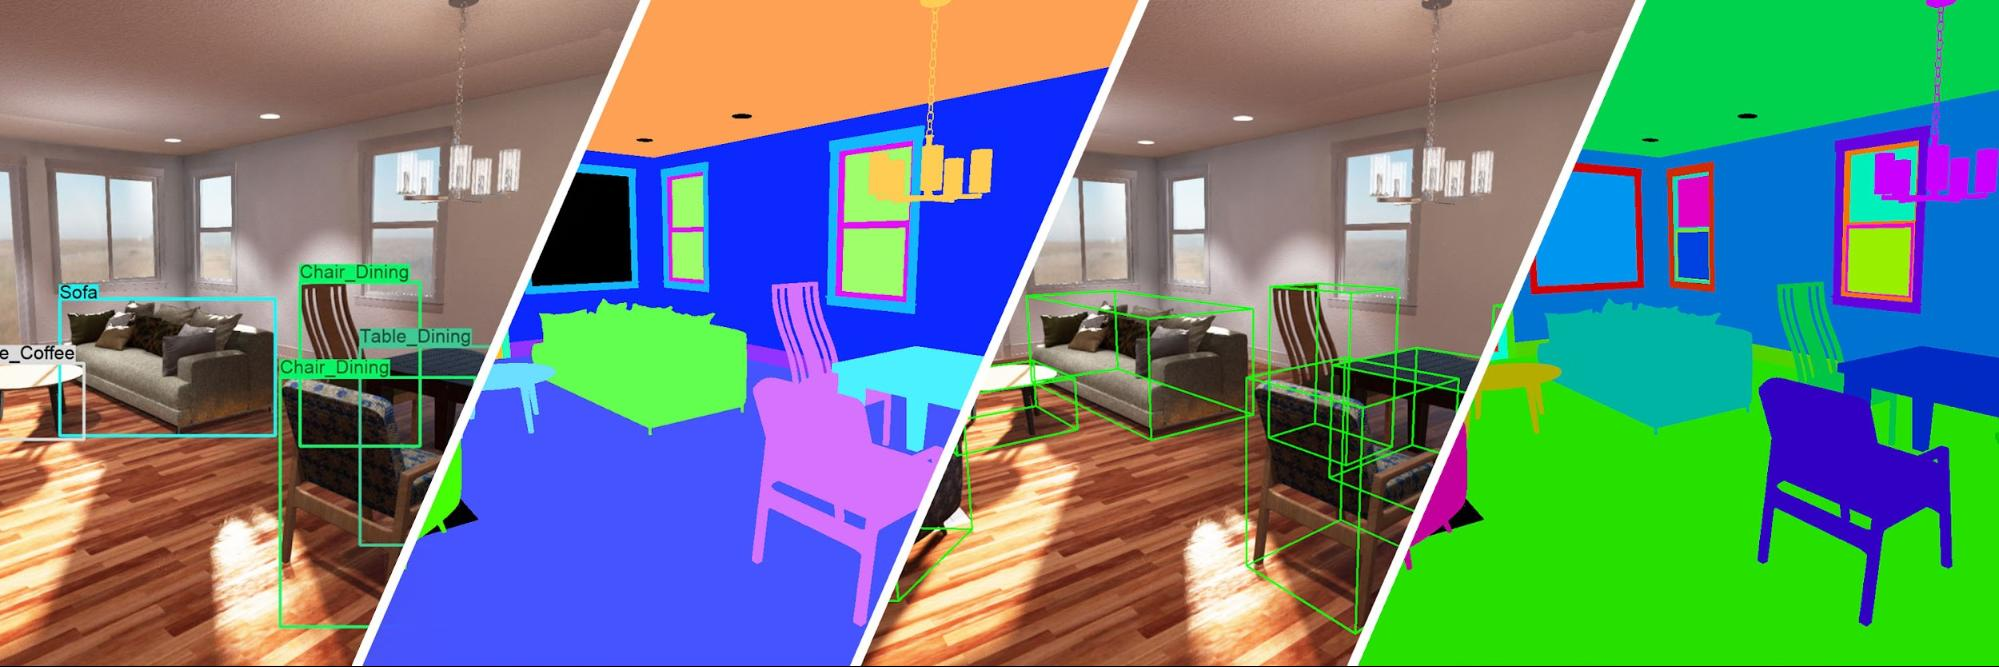 images illustrating machine learning and computer vision